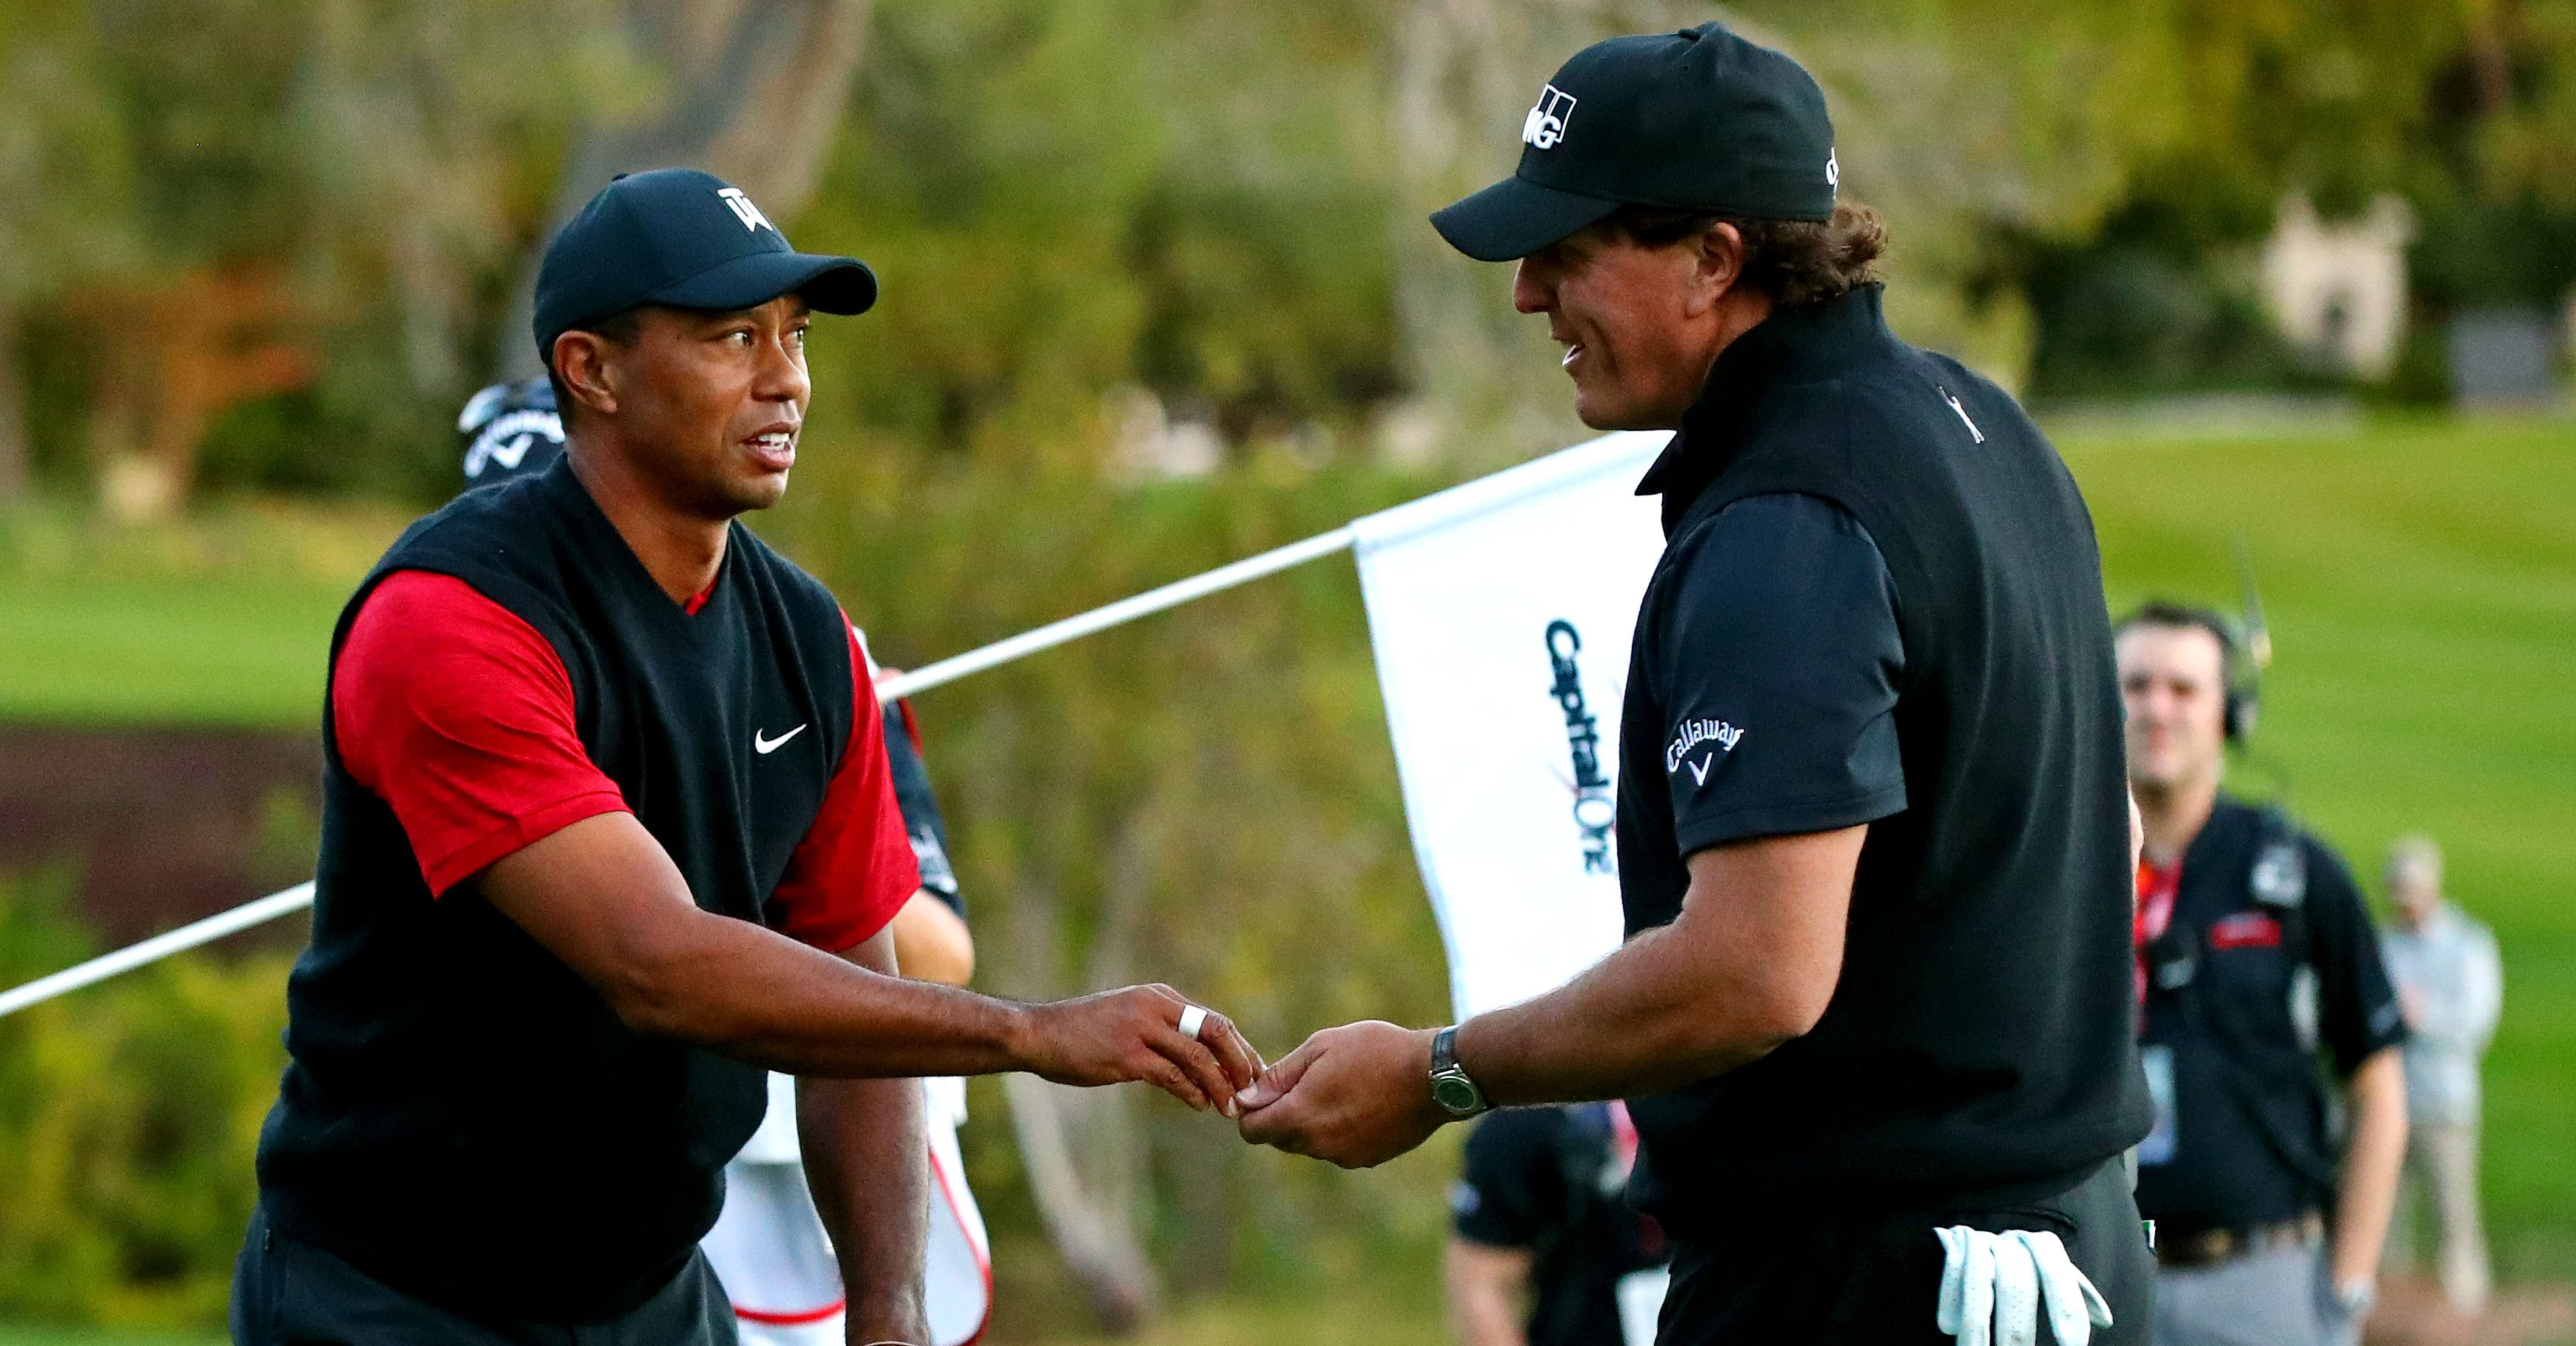 Nov 23, 2018; Las Vegas, NV, USA; Tiger Woods concedes a putt to Phil Mickelson to play extra holes during The Match: Tiger vs Phil golf match at Shadow Creek Golf Course. Mandatory Credit: Rob Schumacher-USA TODAY Sports